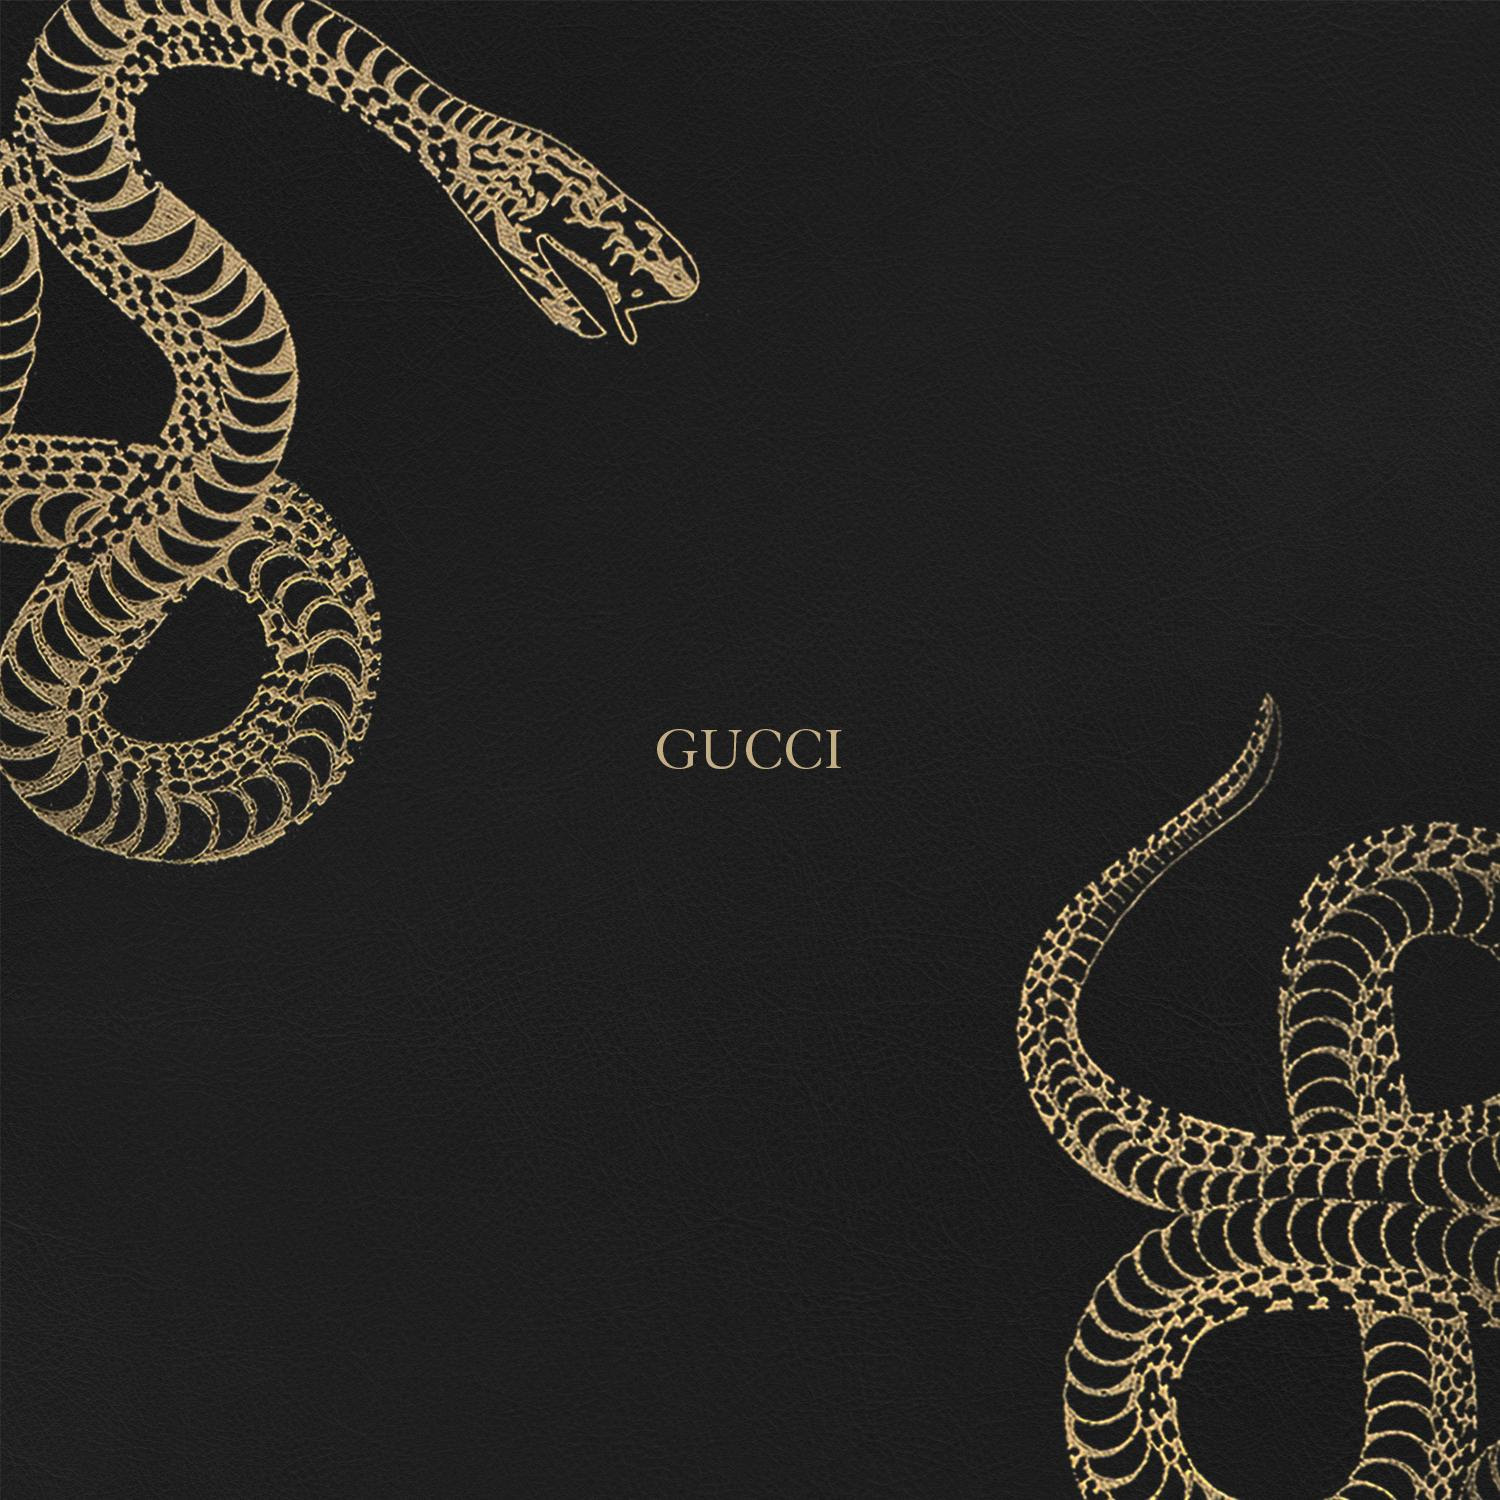 Gucci Ps4 Wallpaper